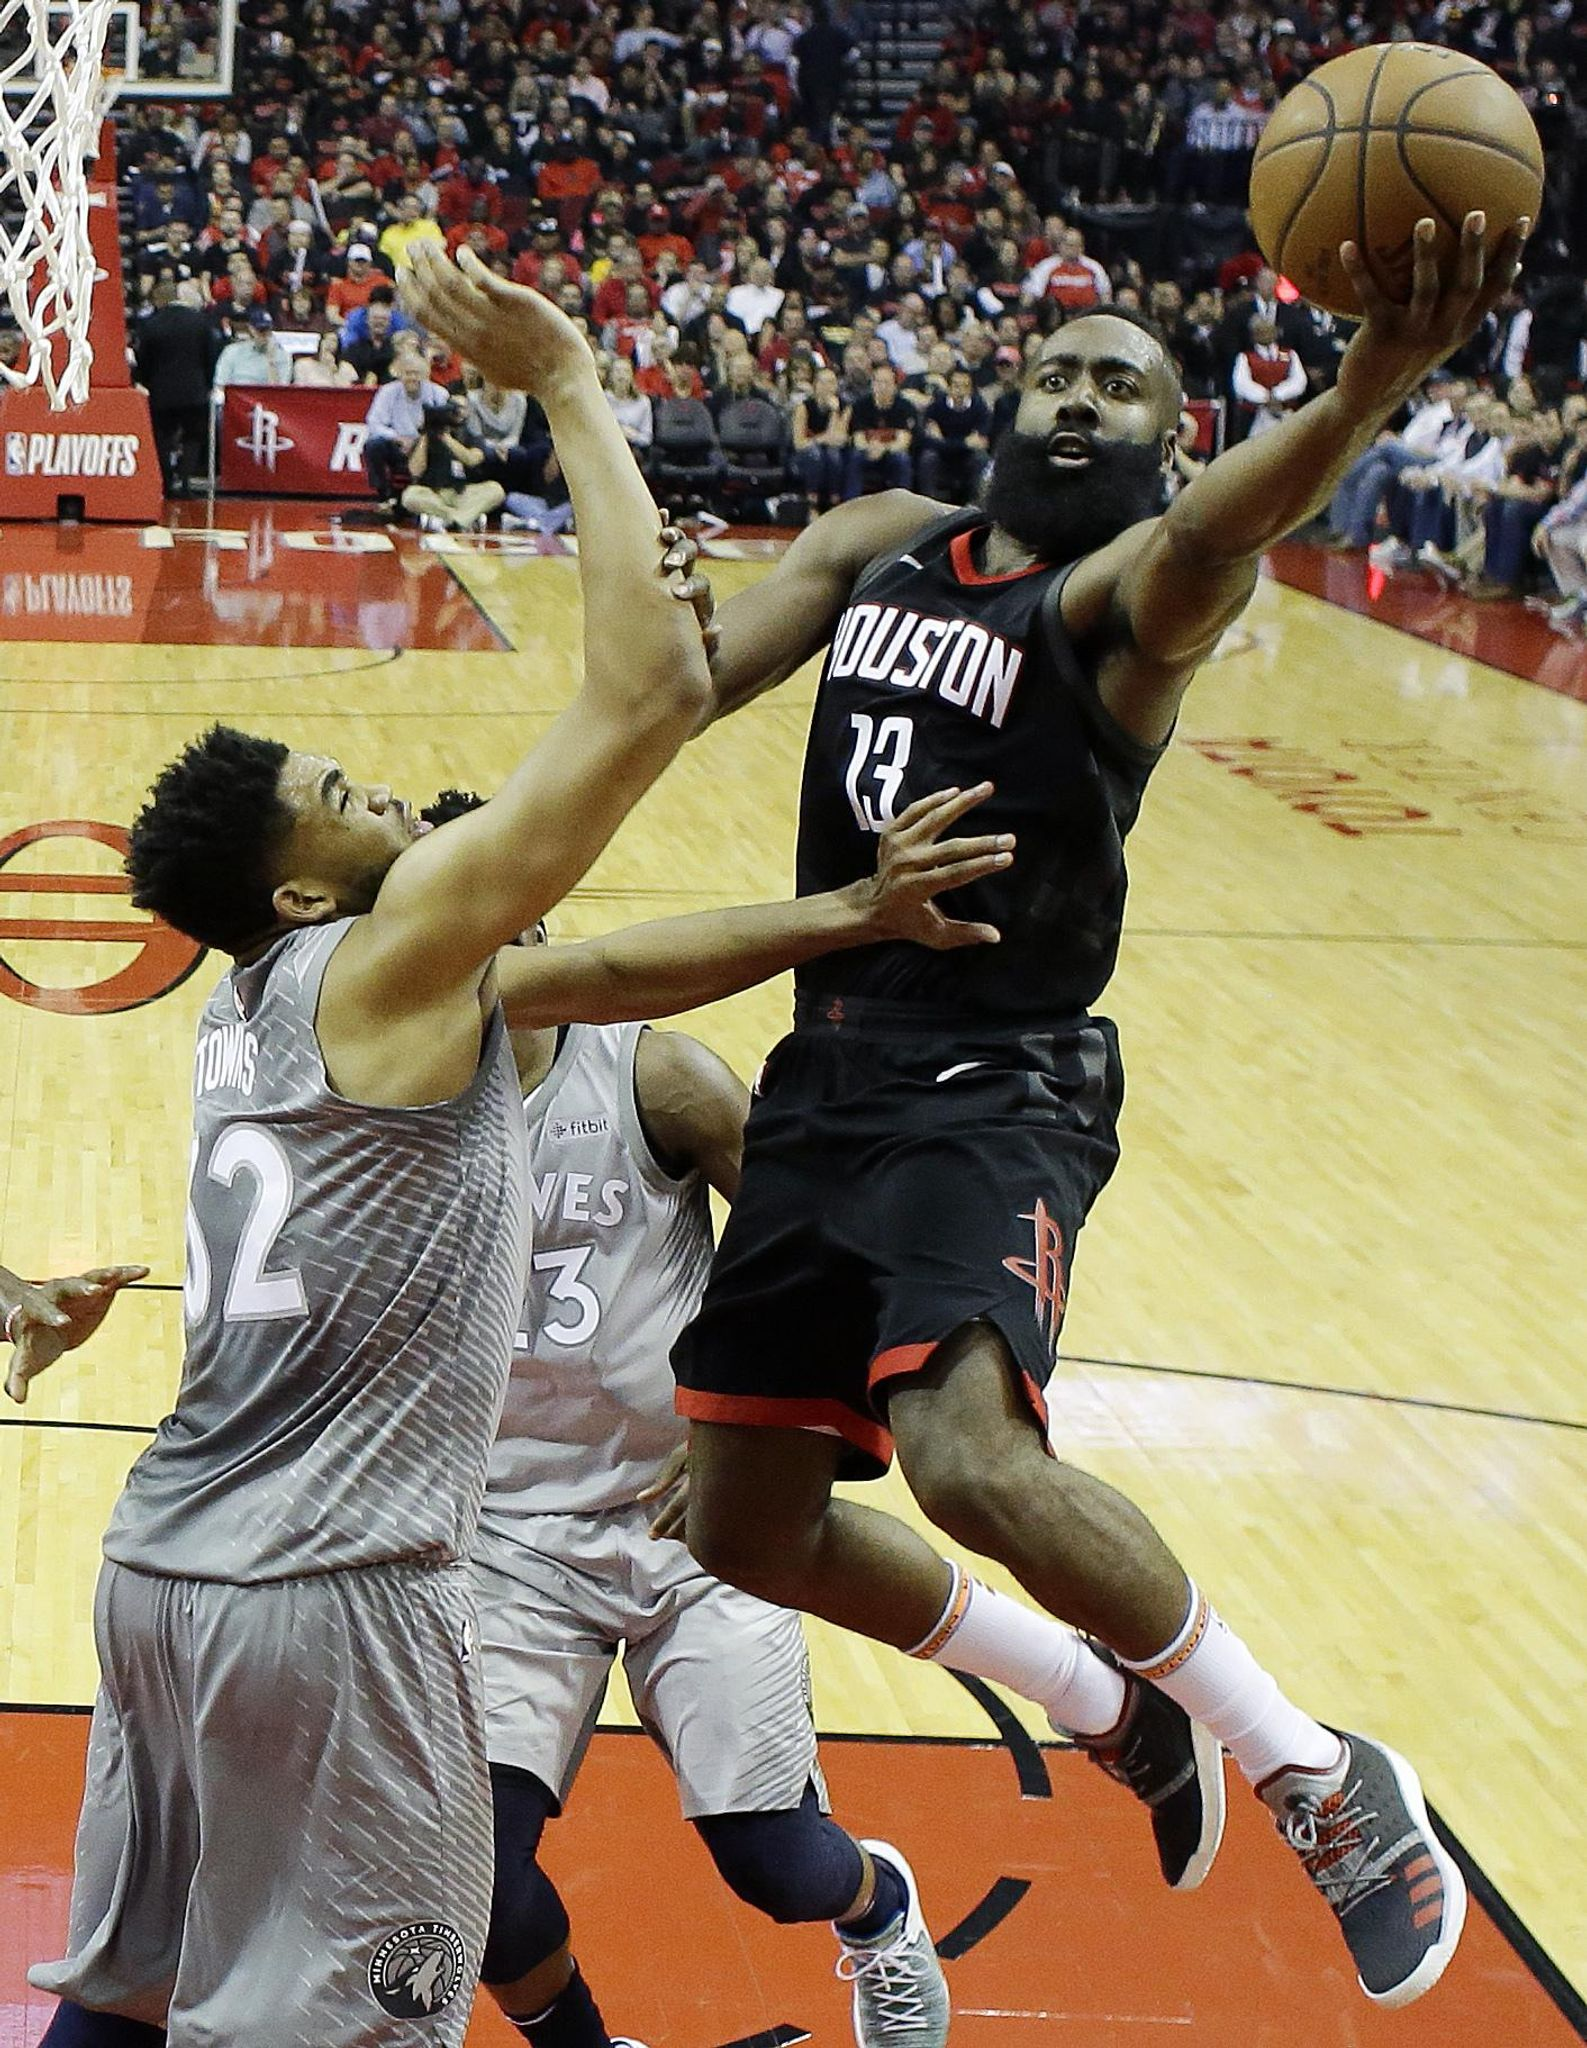 Timberwolves_rockets_basketball_85688_s1587x2048